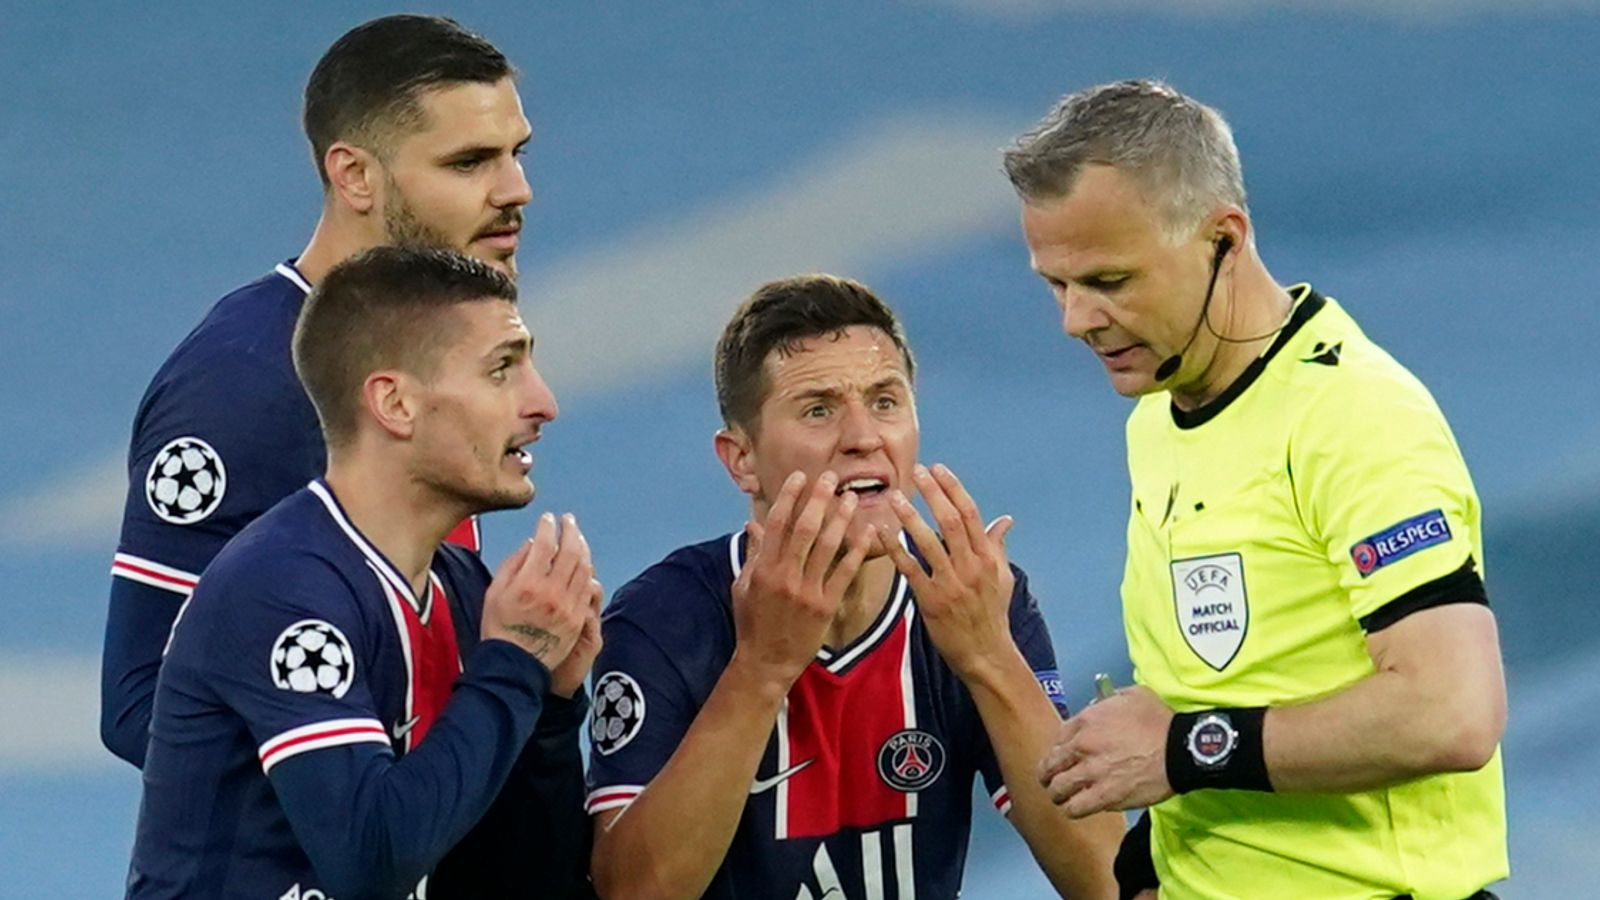 Mauricio Pochettino suggests UEFA investigation into PSG players' claim referee Bjorn Kuipers swore at them during Man City defeat